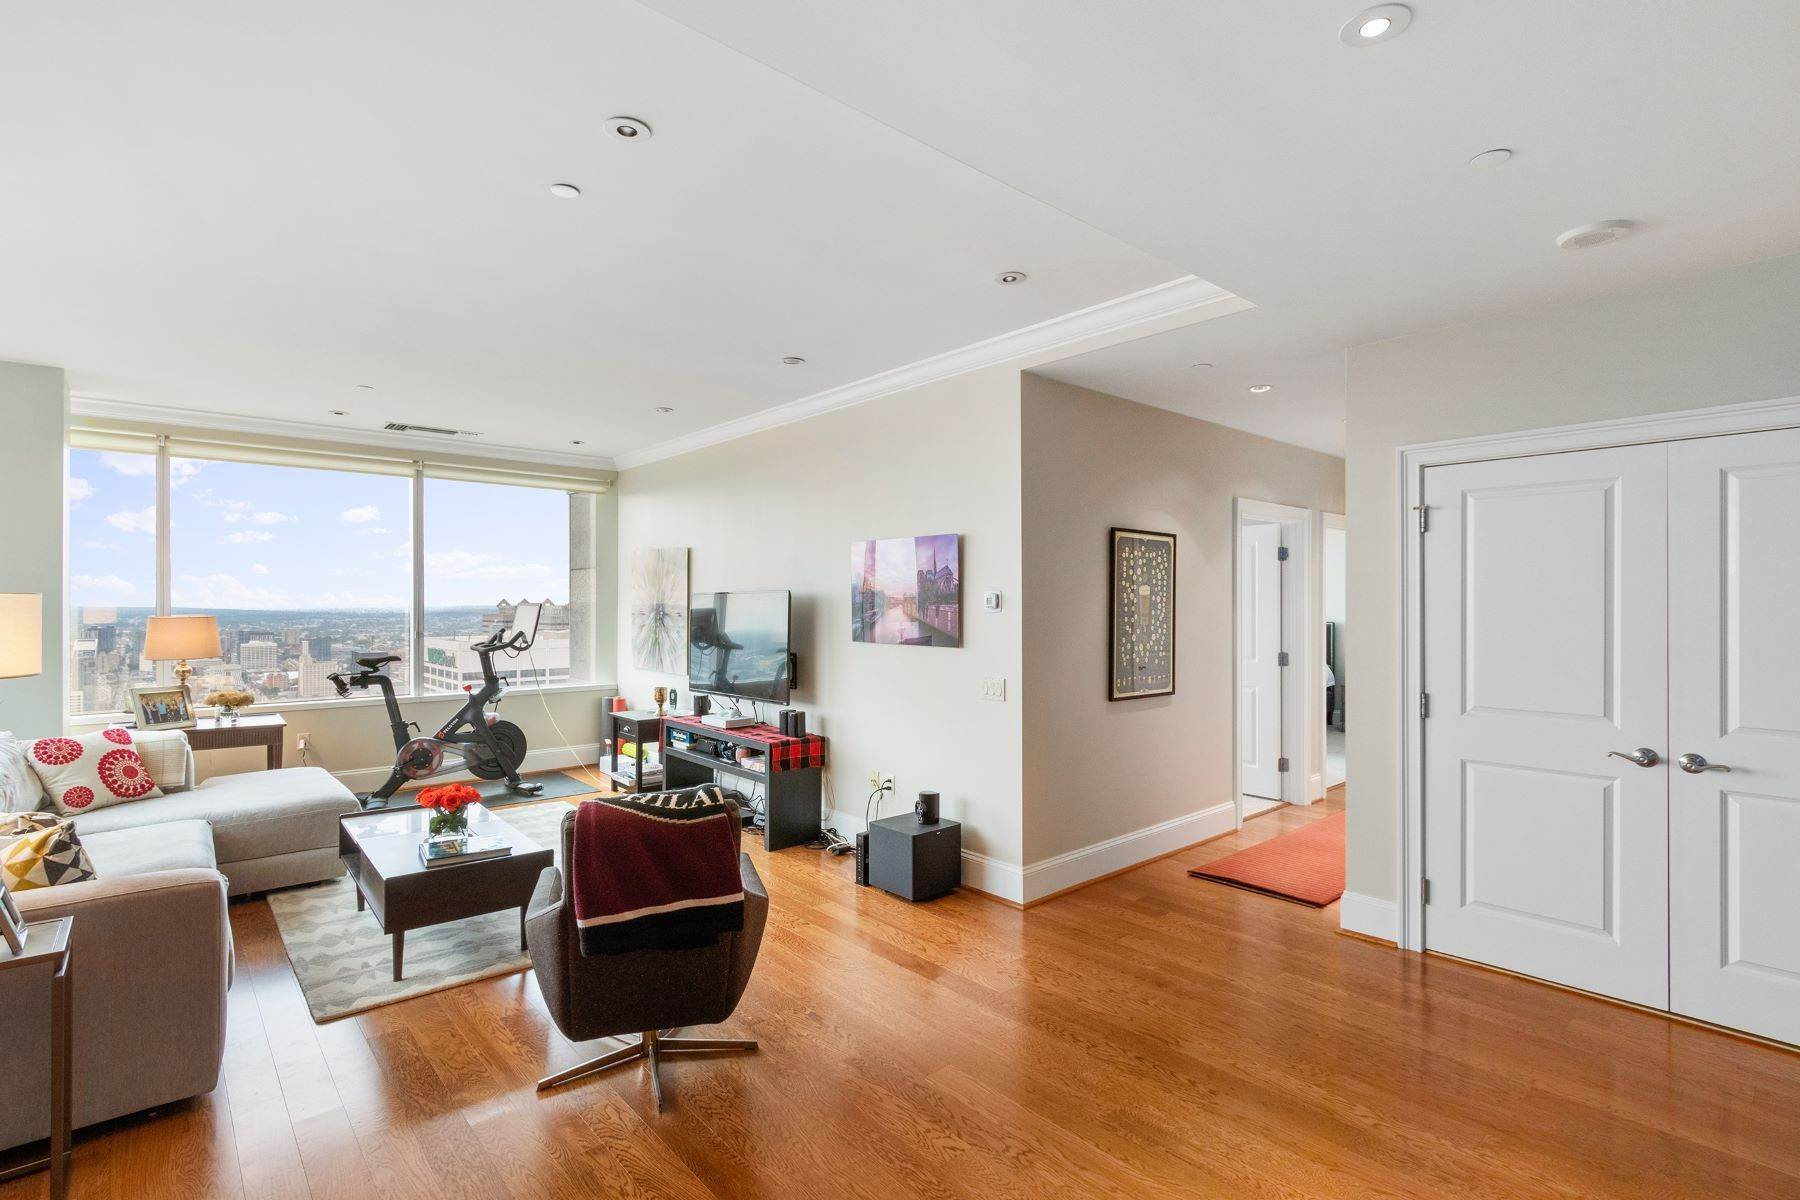 14. Apartments for Sale at 50 S 16TH ST #4202, 4202 Philadelphia, Pennsylvania 19102 United States